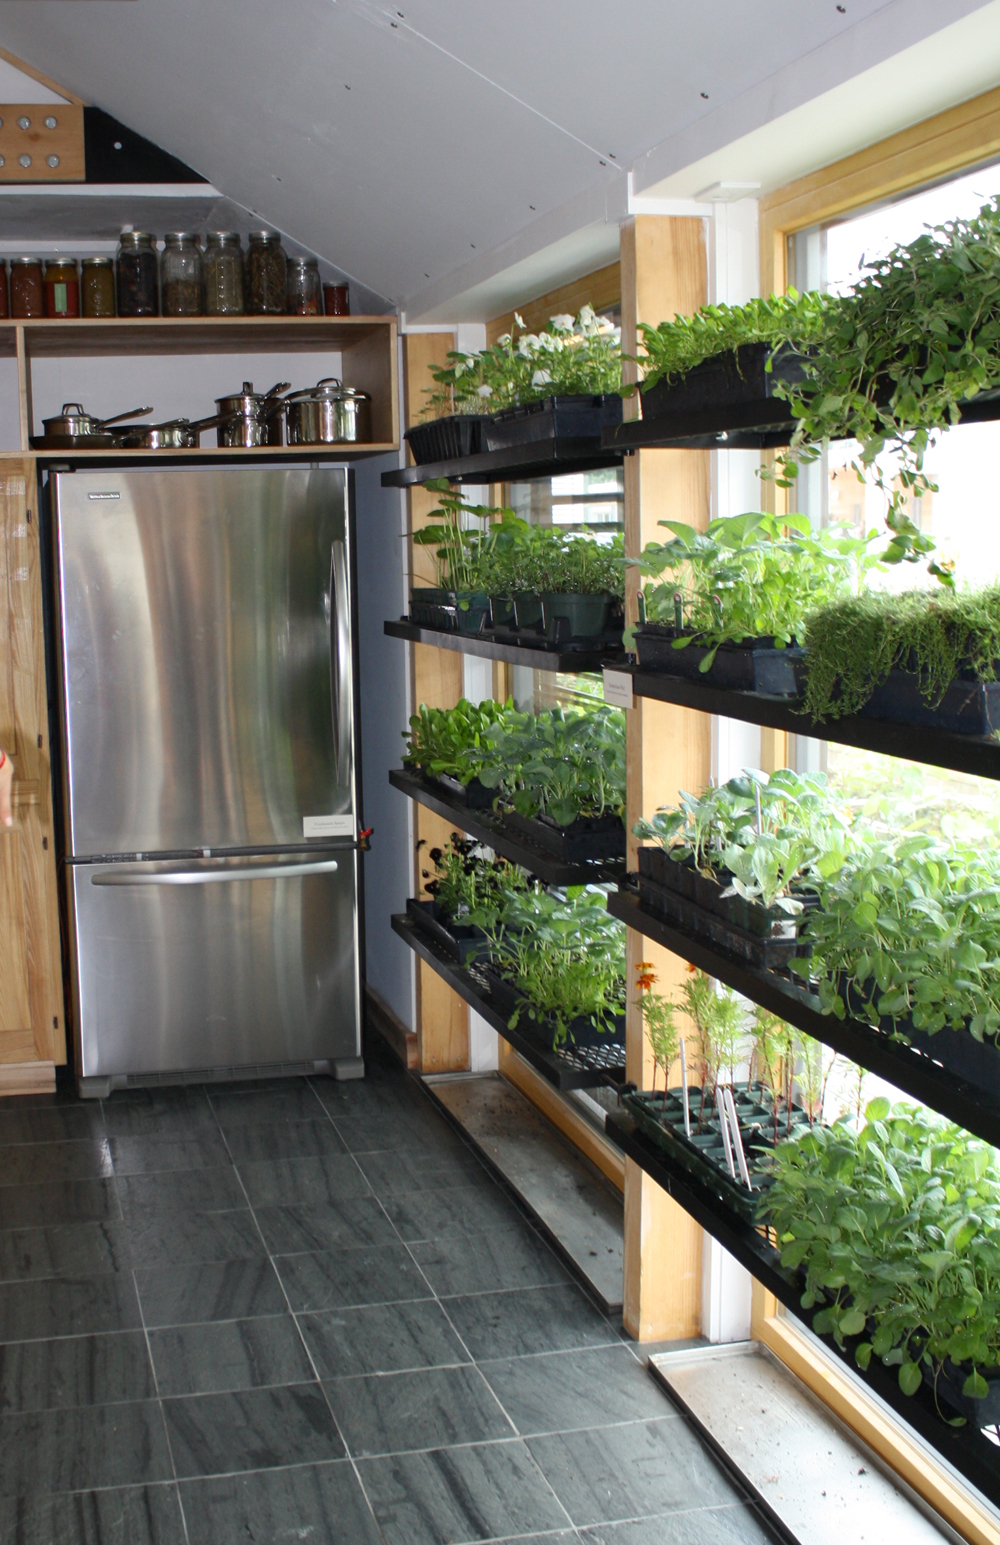 Commercial Grow Room Design: TruexCullins Blog: Solar Decathlon Review, Day 2: Products